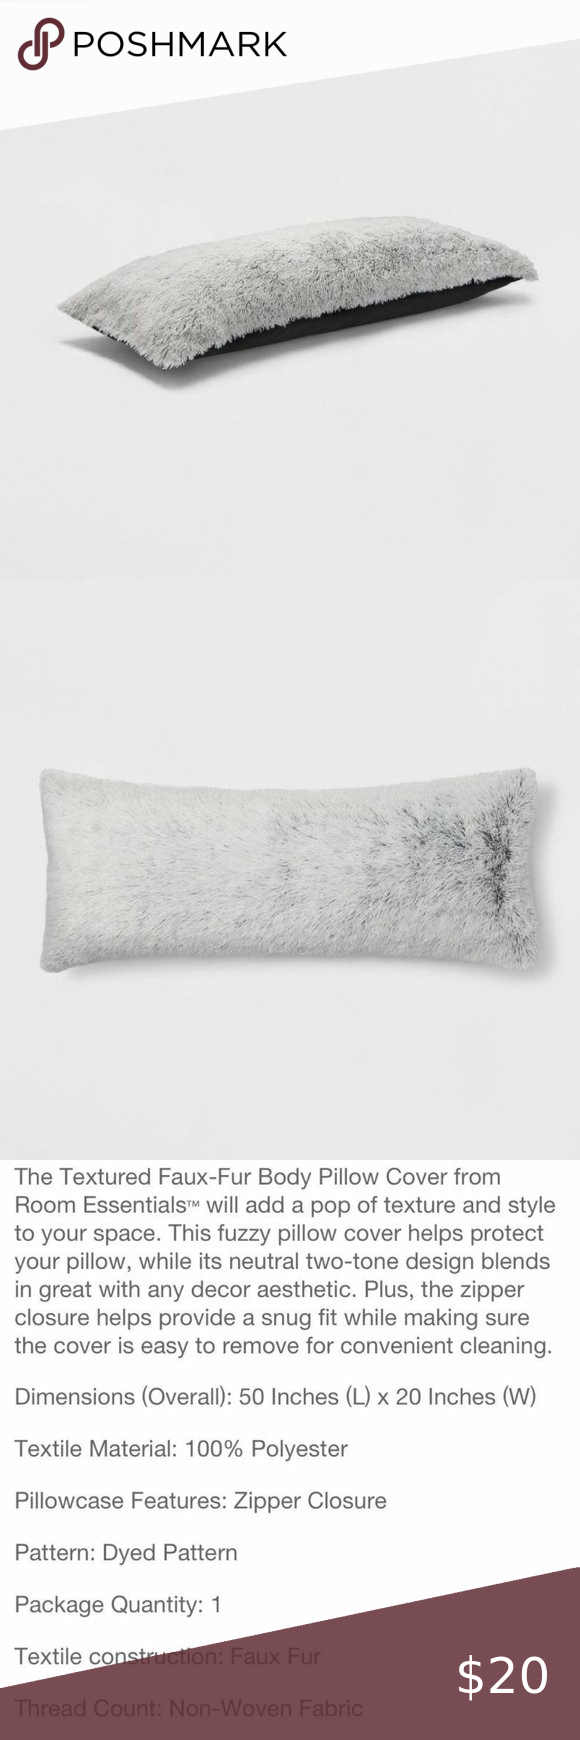 textured faux fur body pillow cover